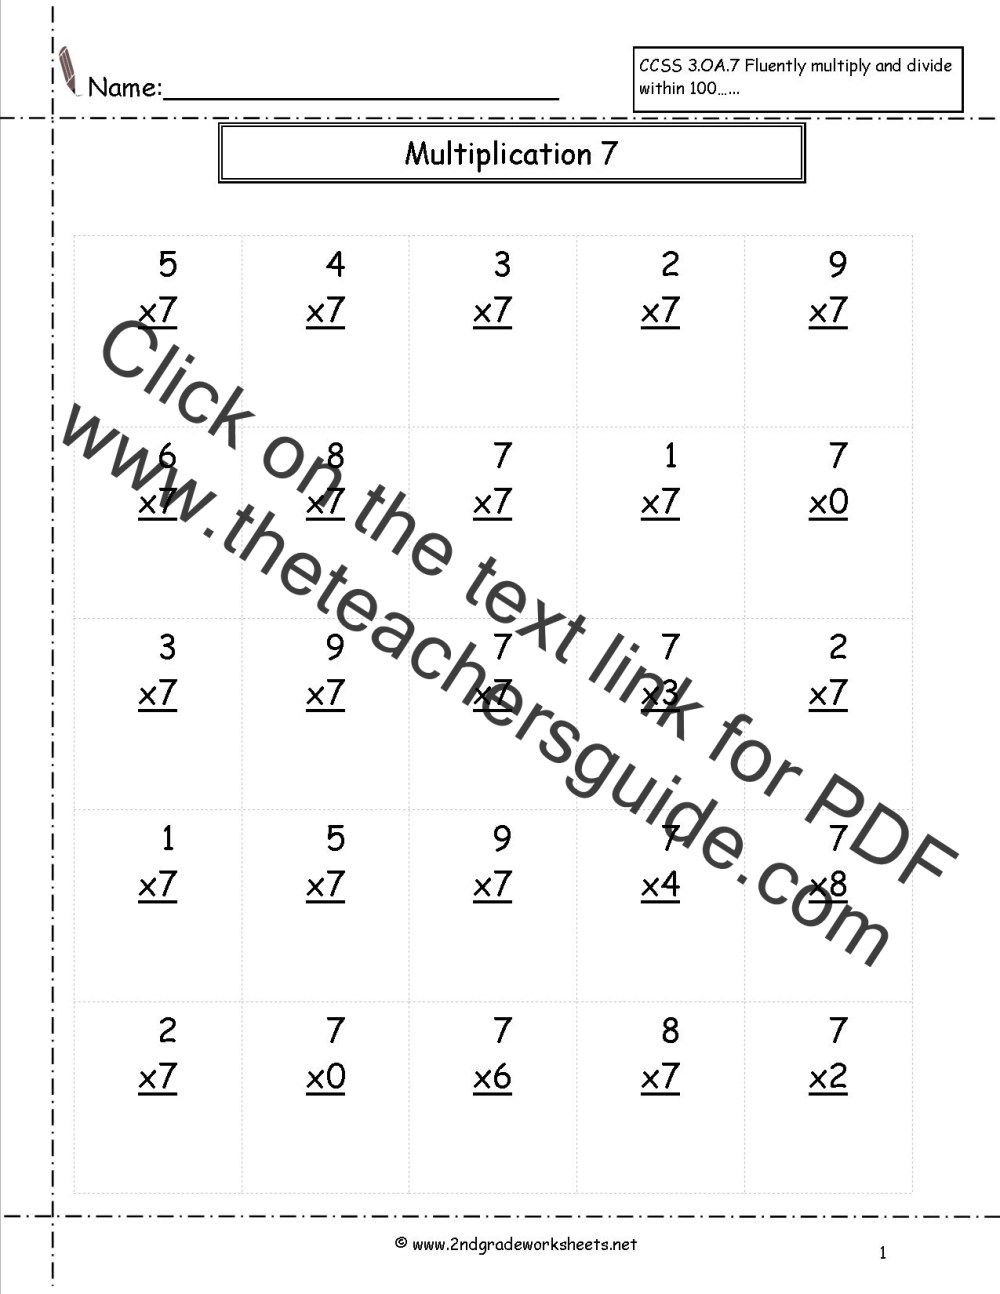 medium resolution of Egyptian Multiplication Method Worksheets   Printable Worksheets and  Activities for Teachers